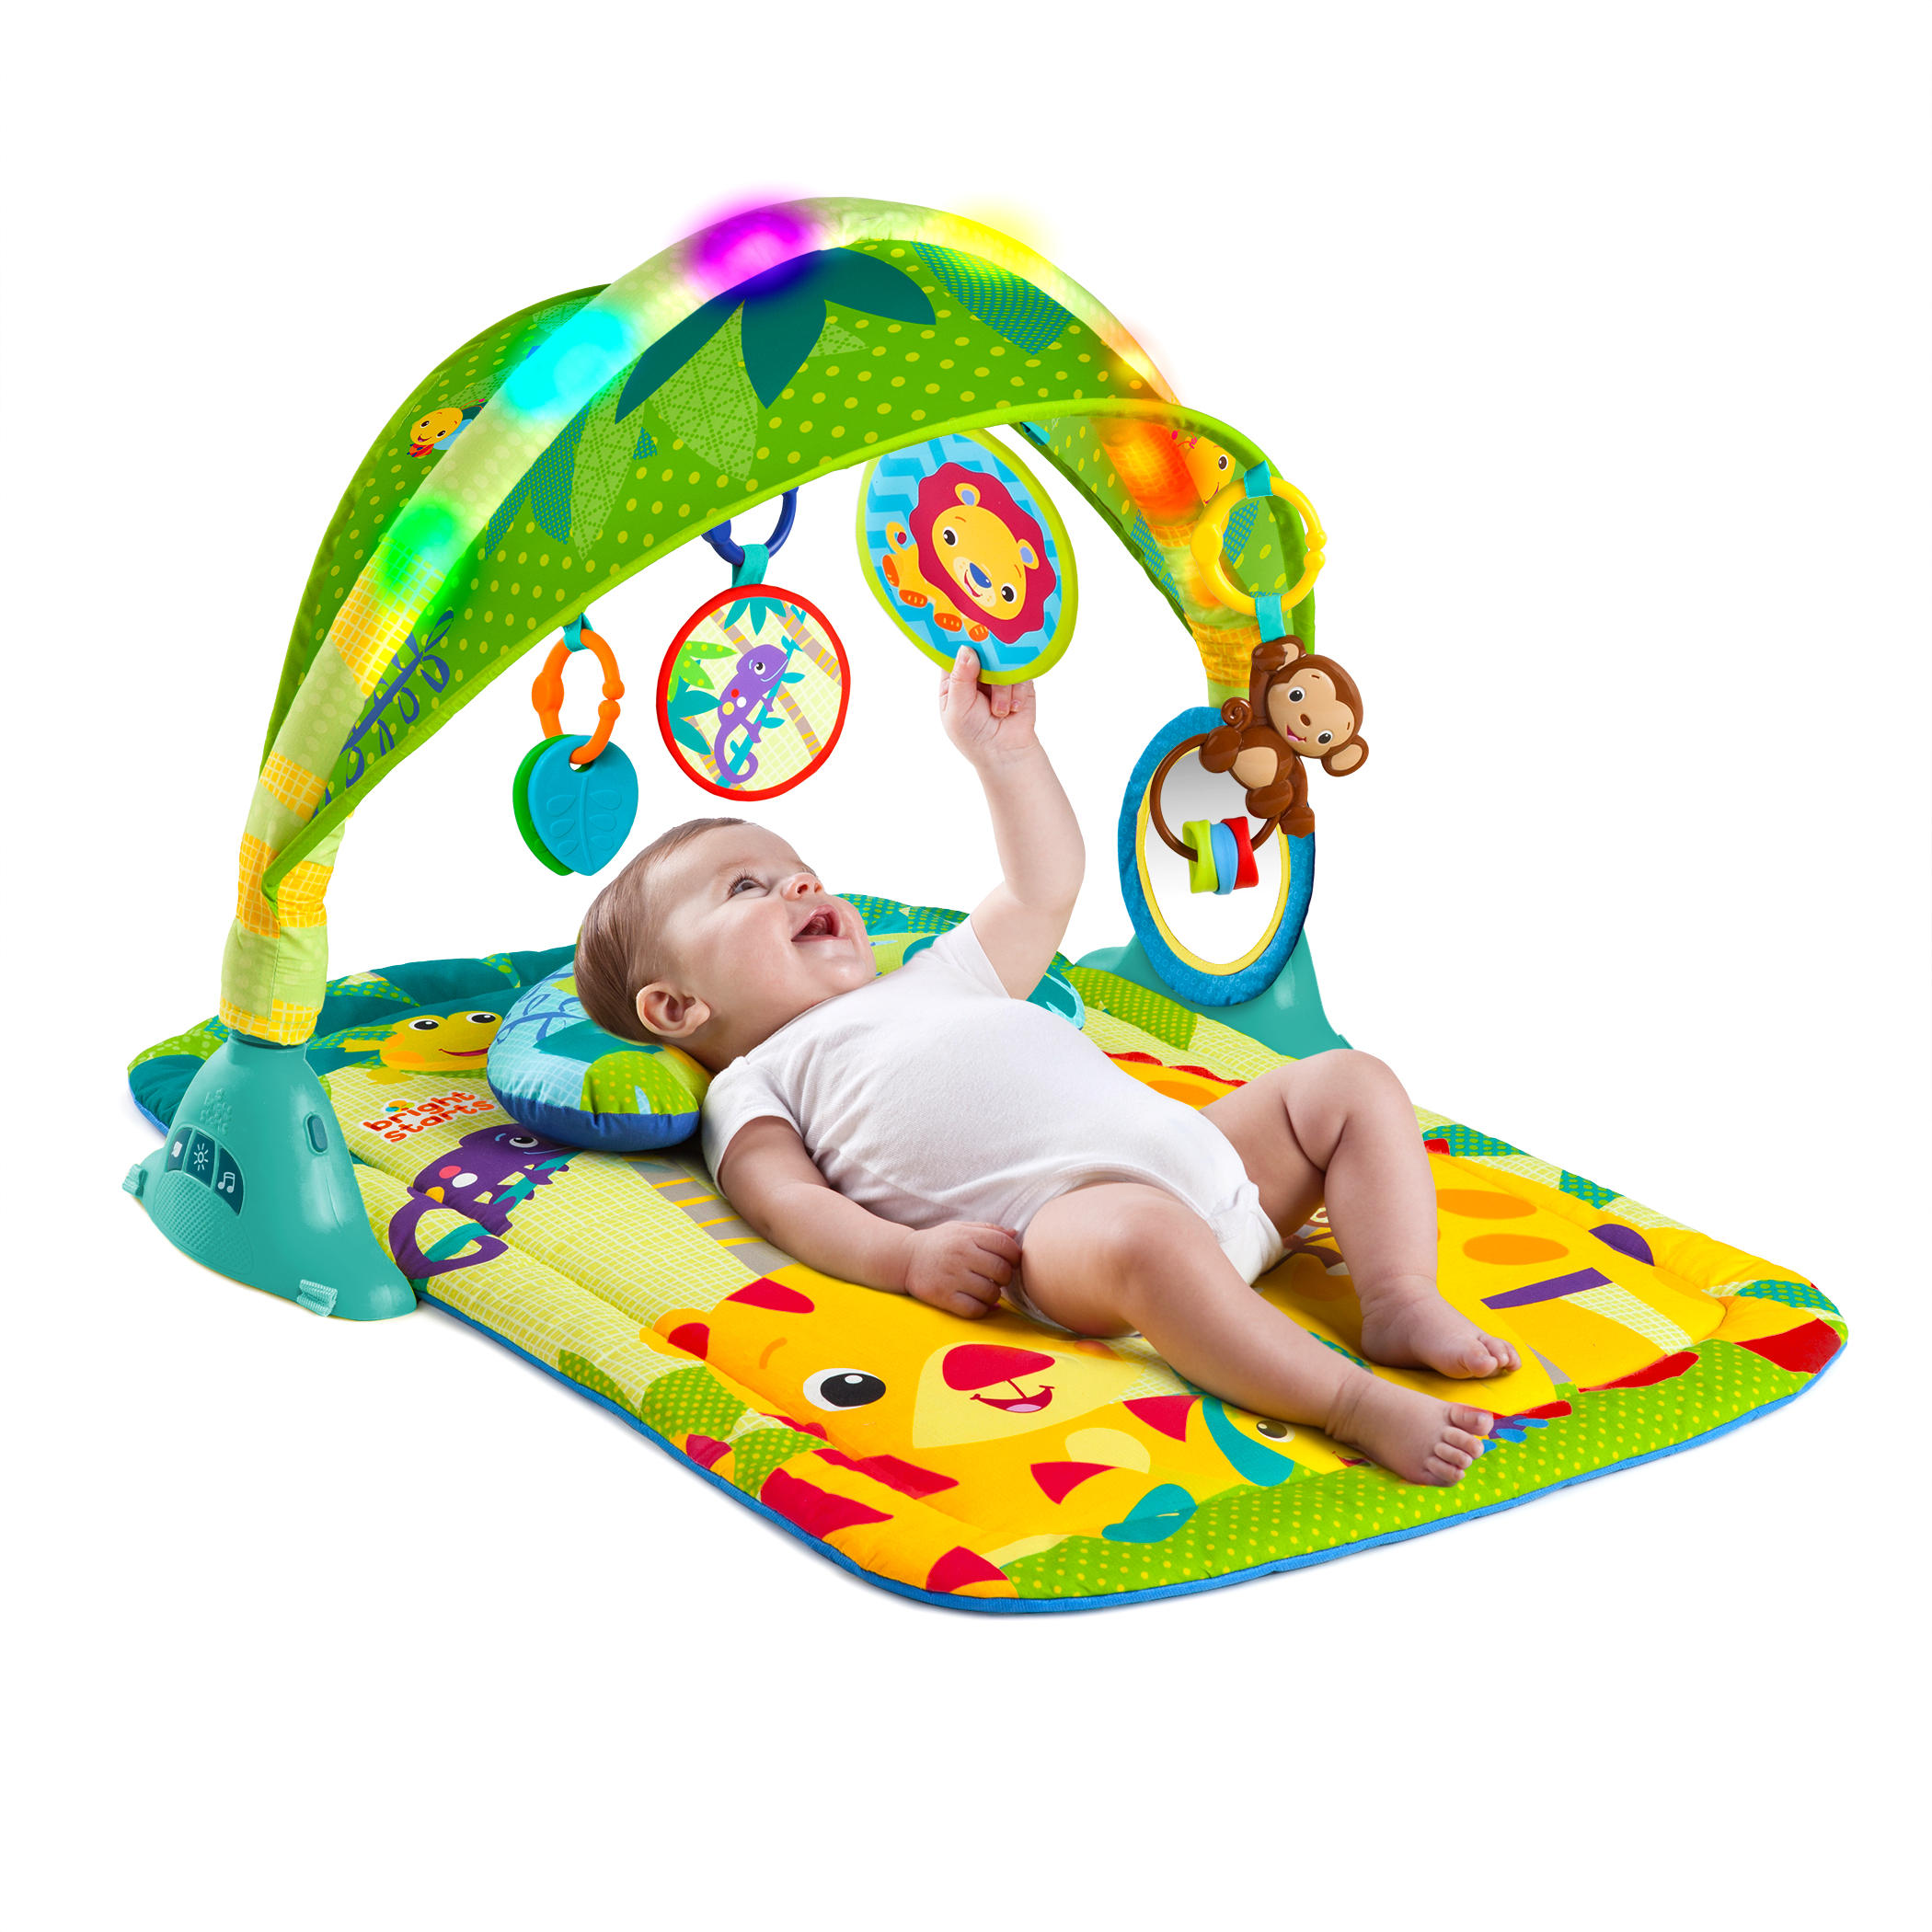 Lights & Giggles™ Activity Gym